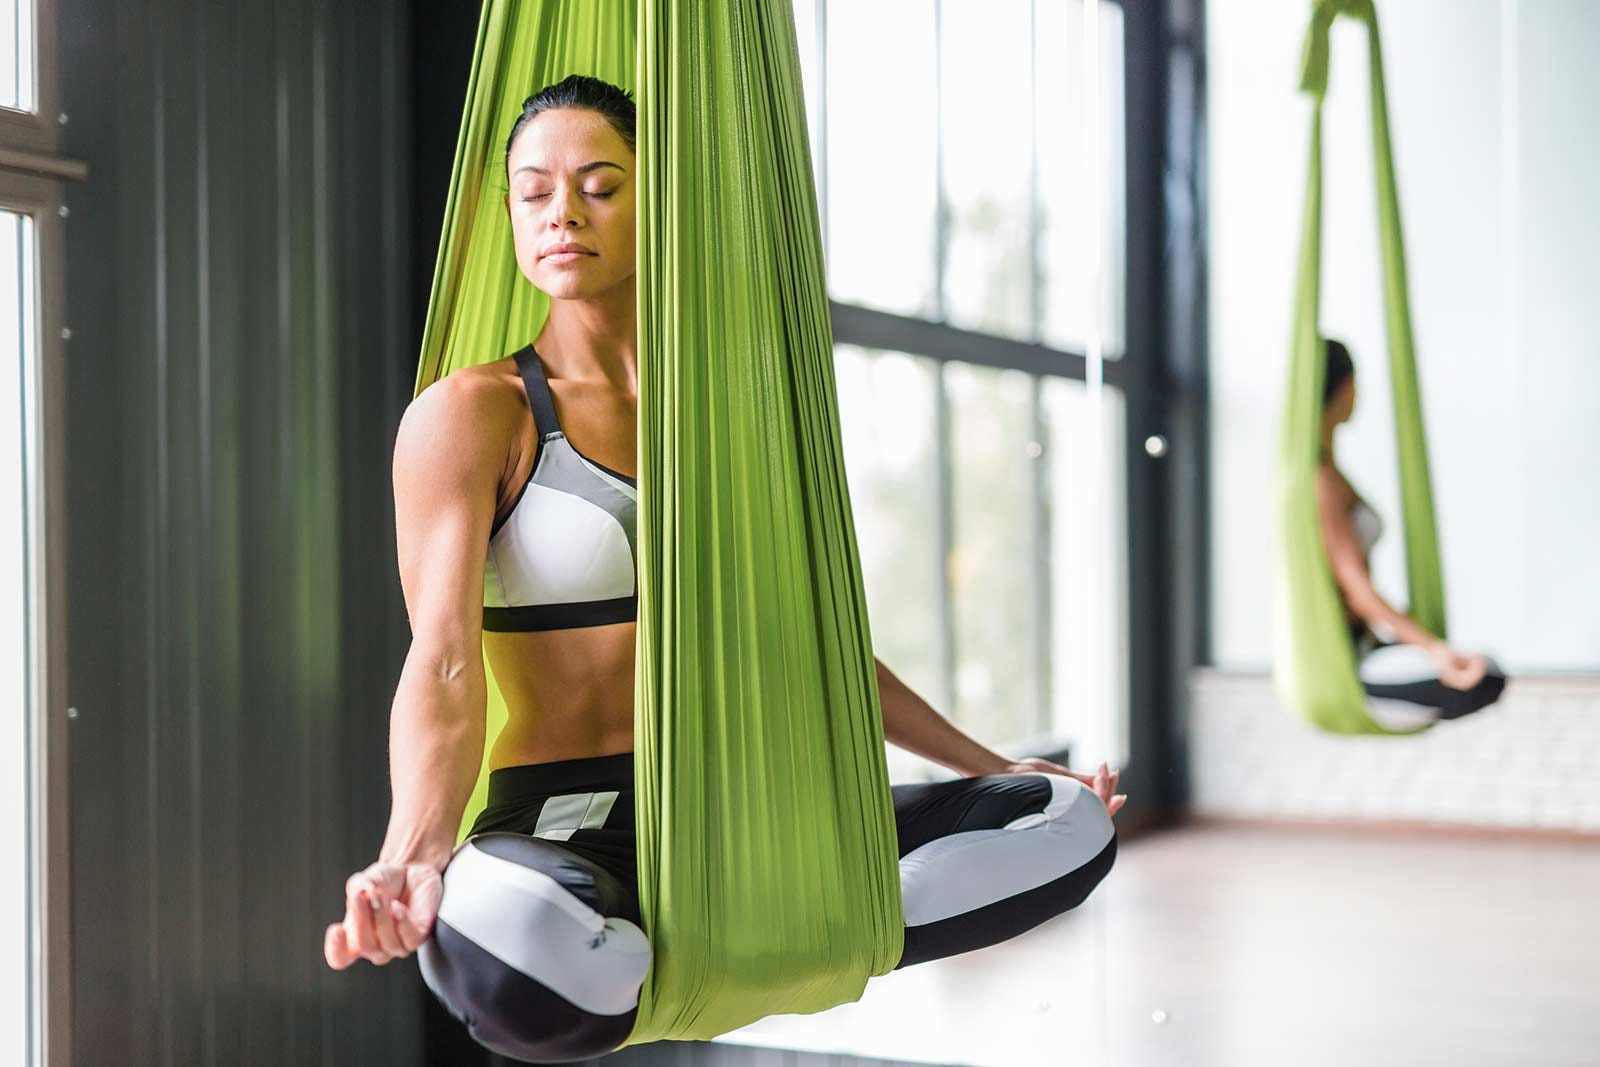 A woman meditating in a yoga swing.